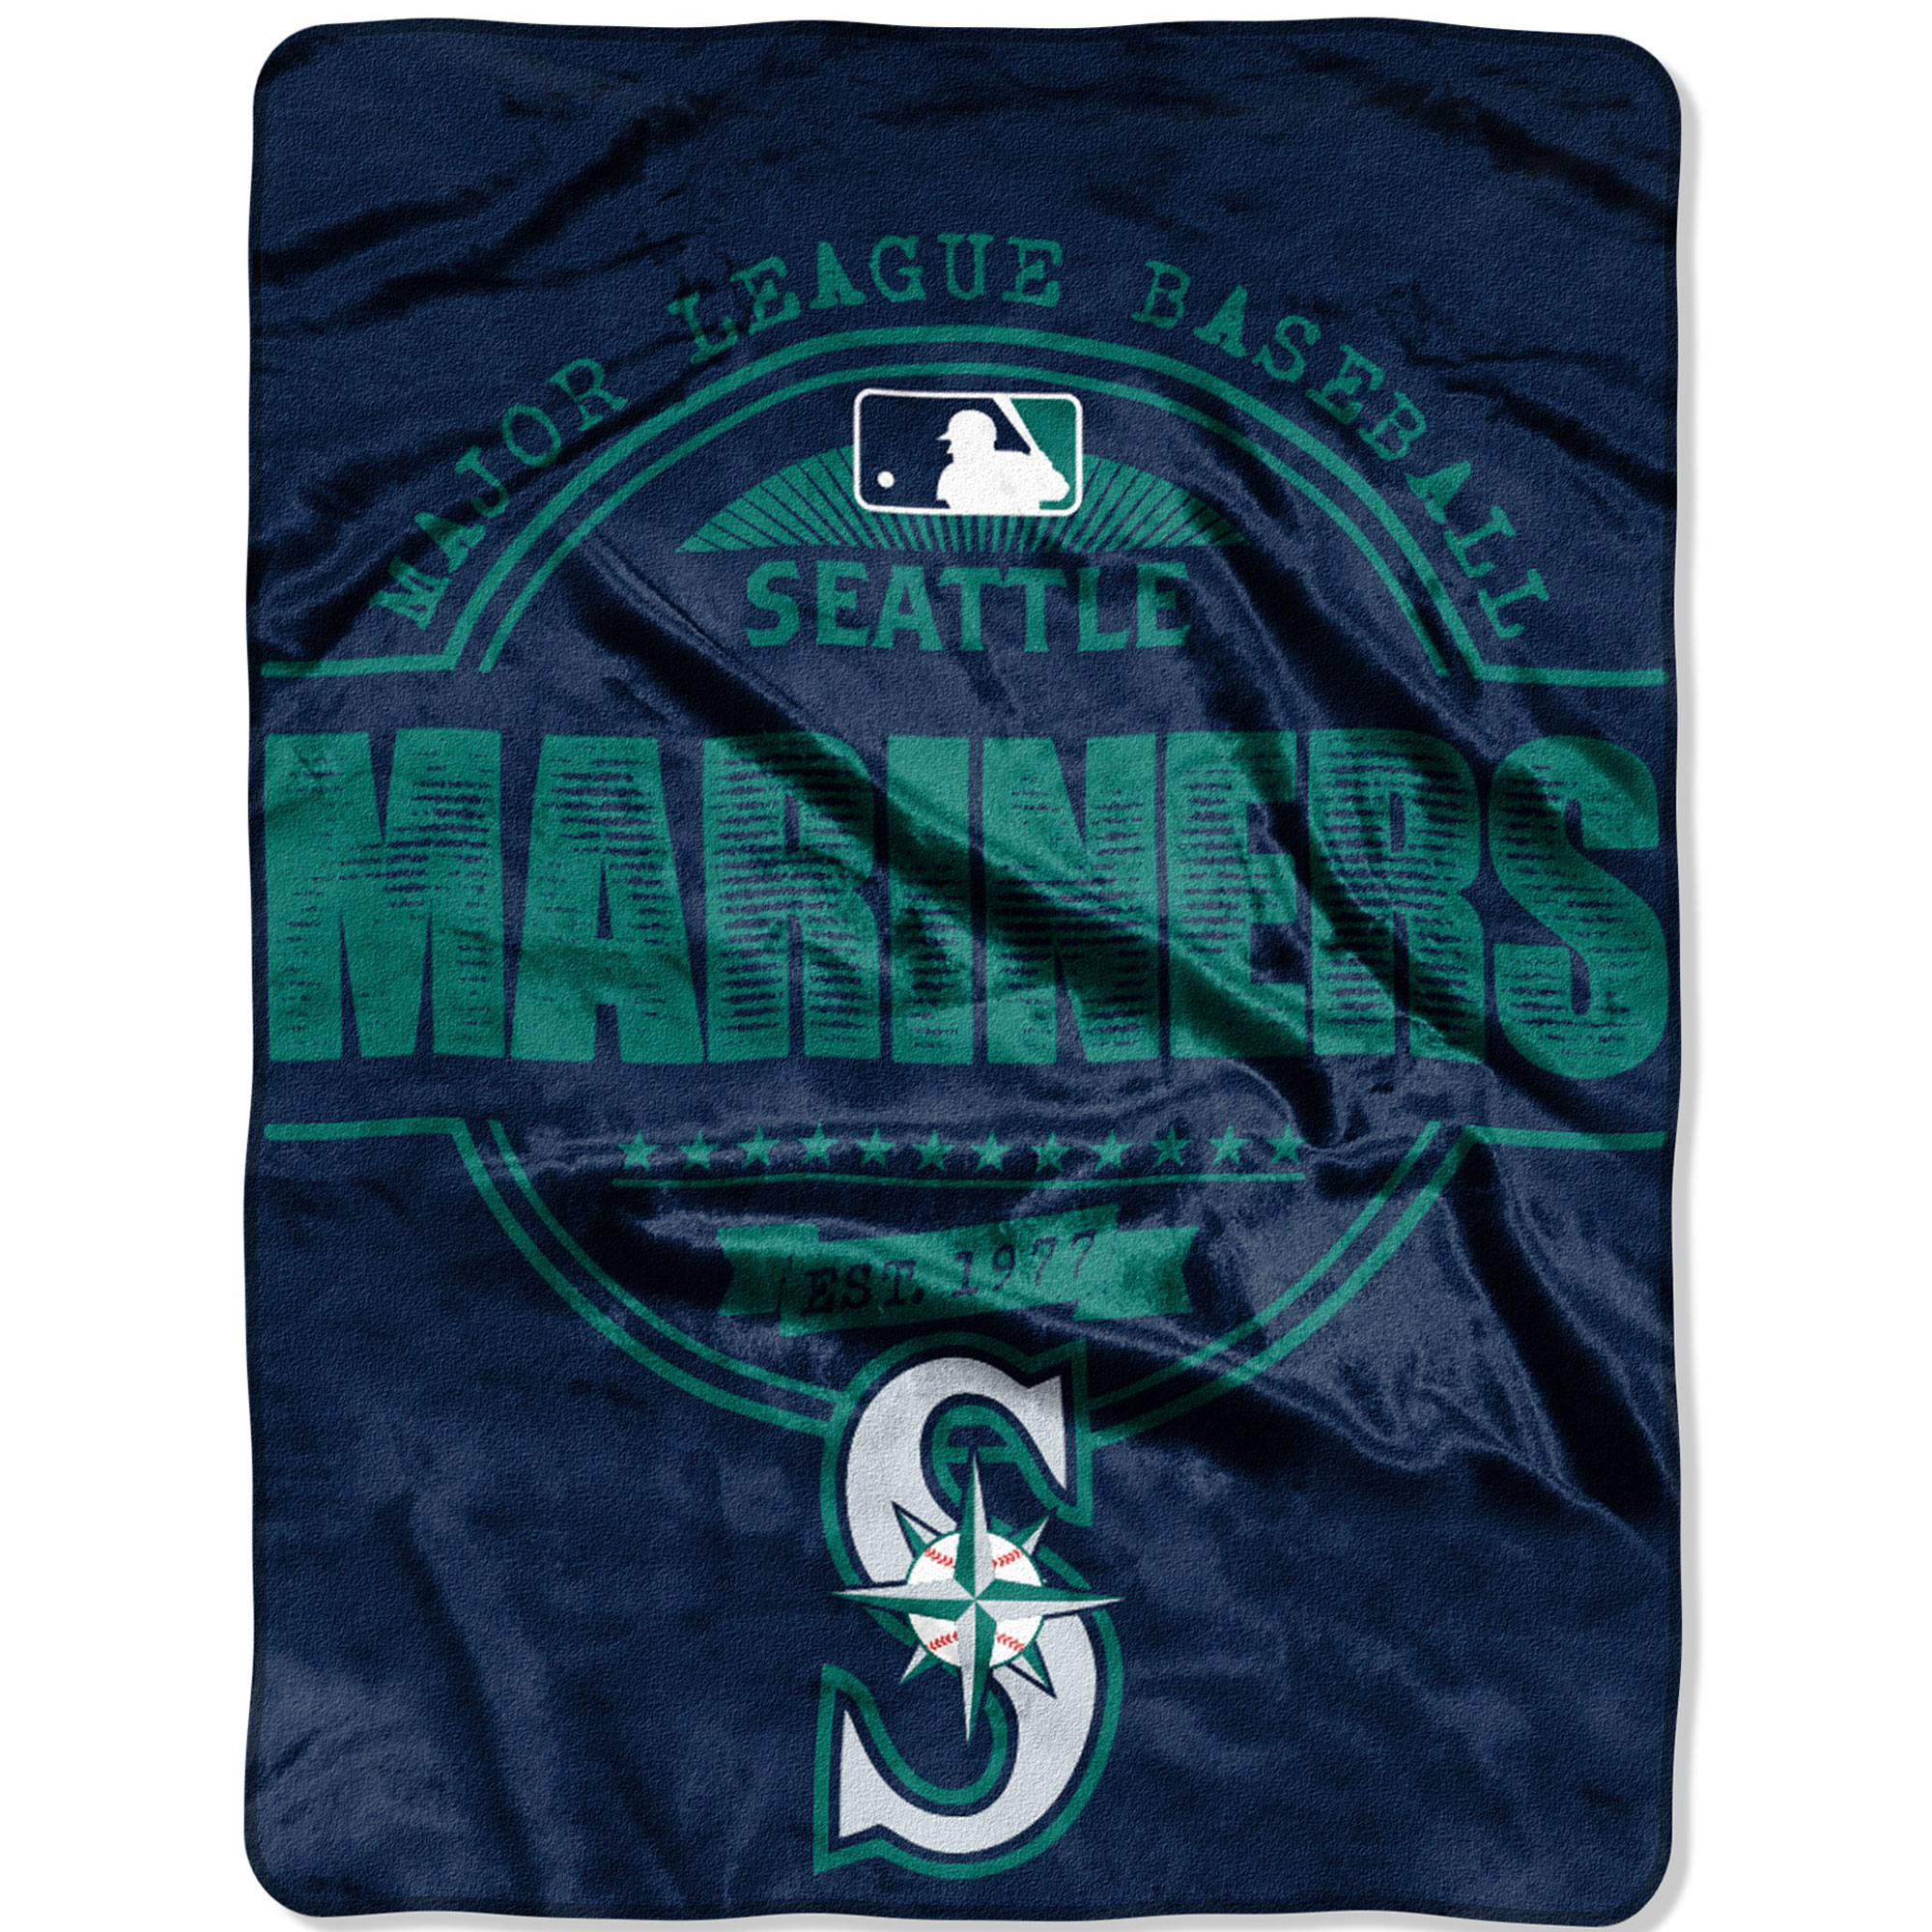 "Seattle Mariners The Northwest Company 46"" x 60"" Structure Micro Raschel Plush Blanket - No Size"